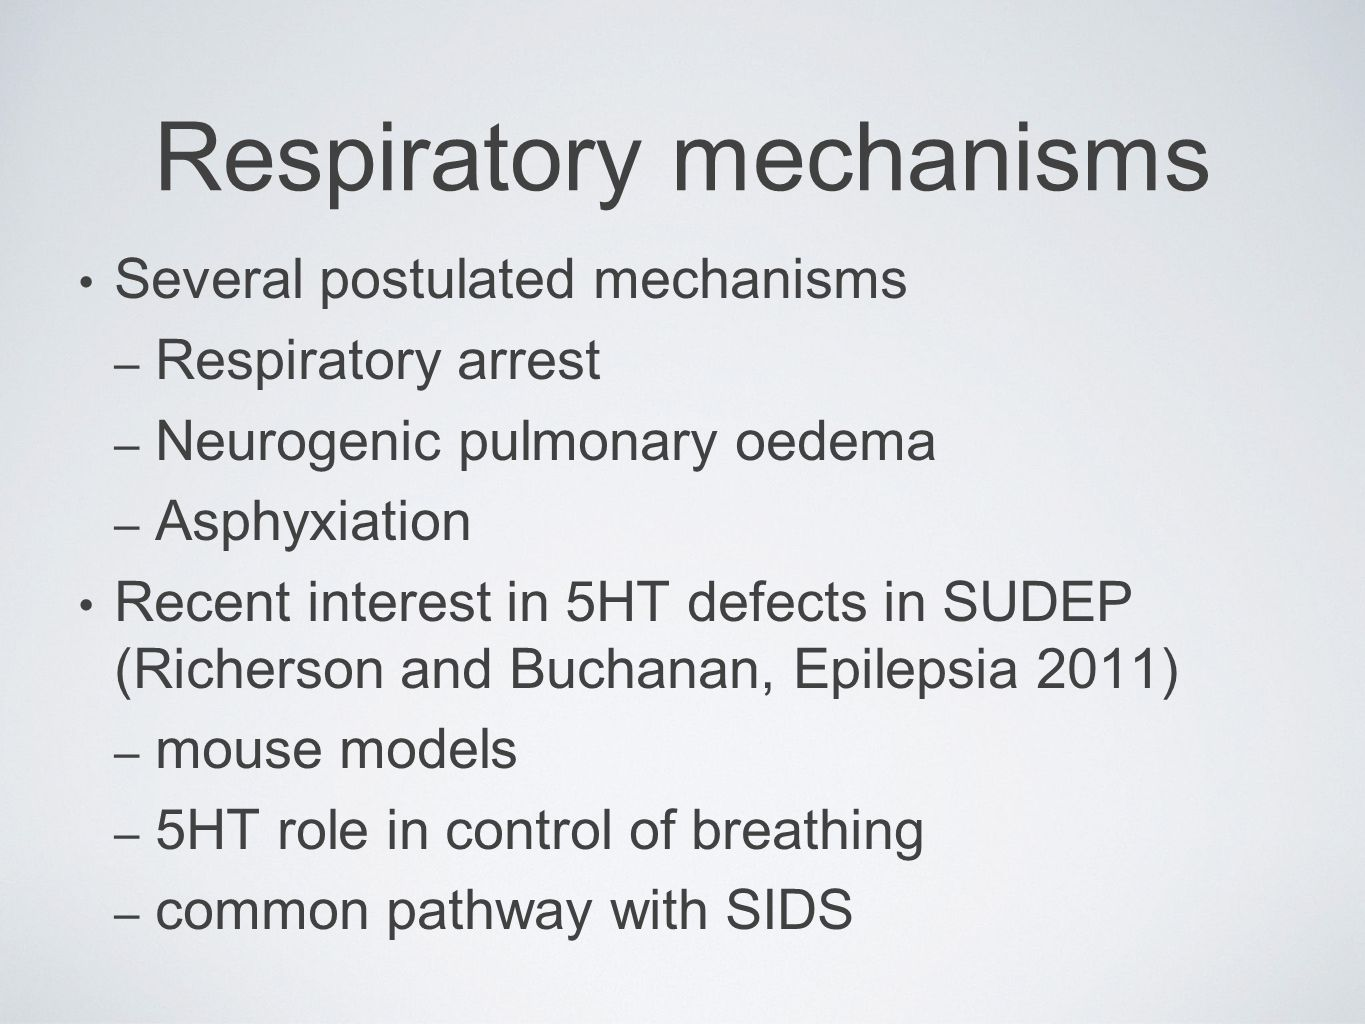 Respiratory mechanisms Several postulated mechanisms – Respiratory arrest – Neurogenic pulmonary oedema – Asphyxiation Recent interest in 5HT defects in SUDEP (Richerson and Buchanan, Epilepsia 2011) – mouse models – 5HT role in control of breathing – common pathway with SIDS